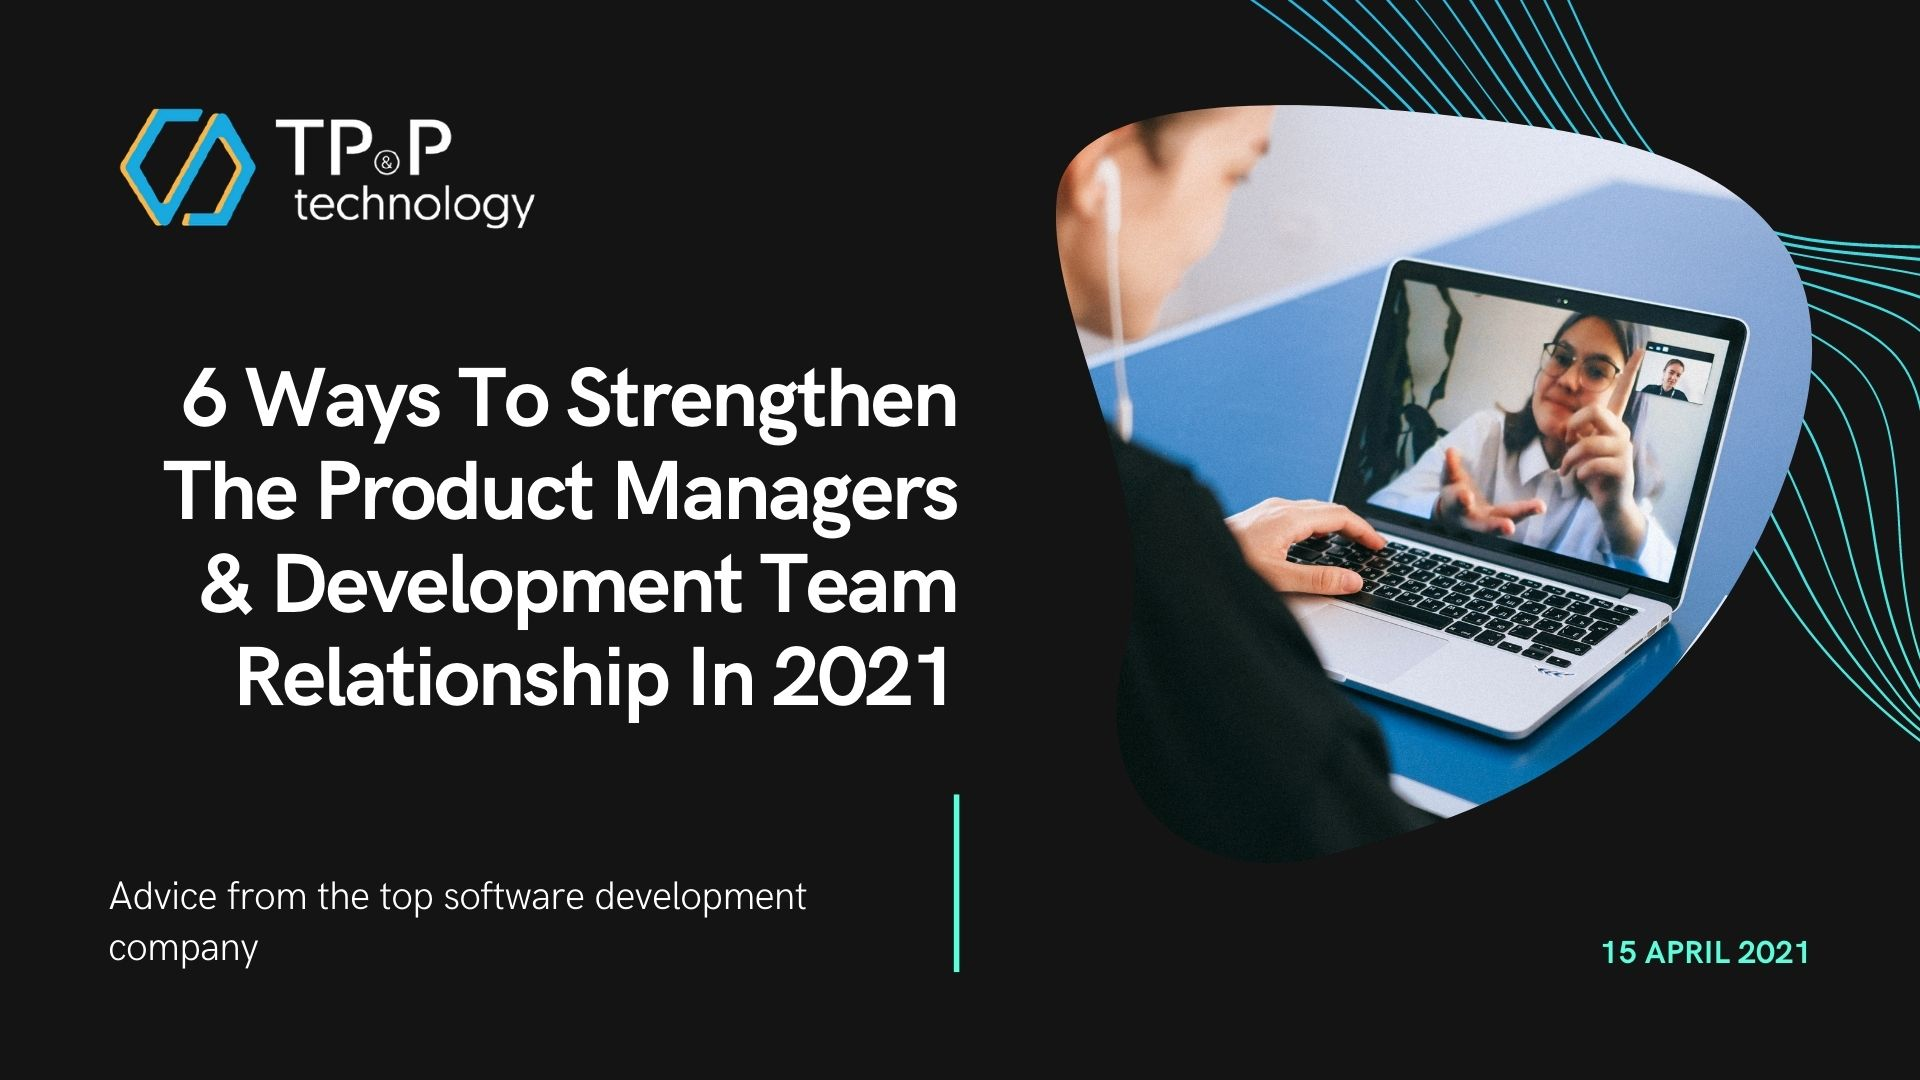 6 Ways To Strengthen The Product Managers & Development Team Relationship In 2021